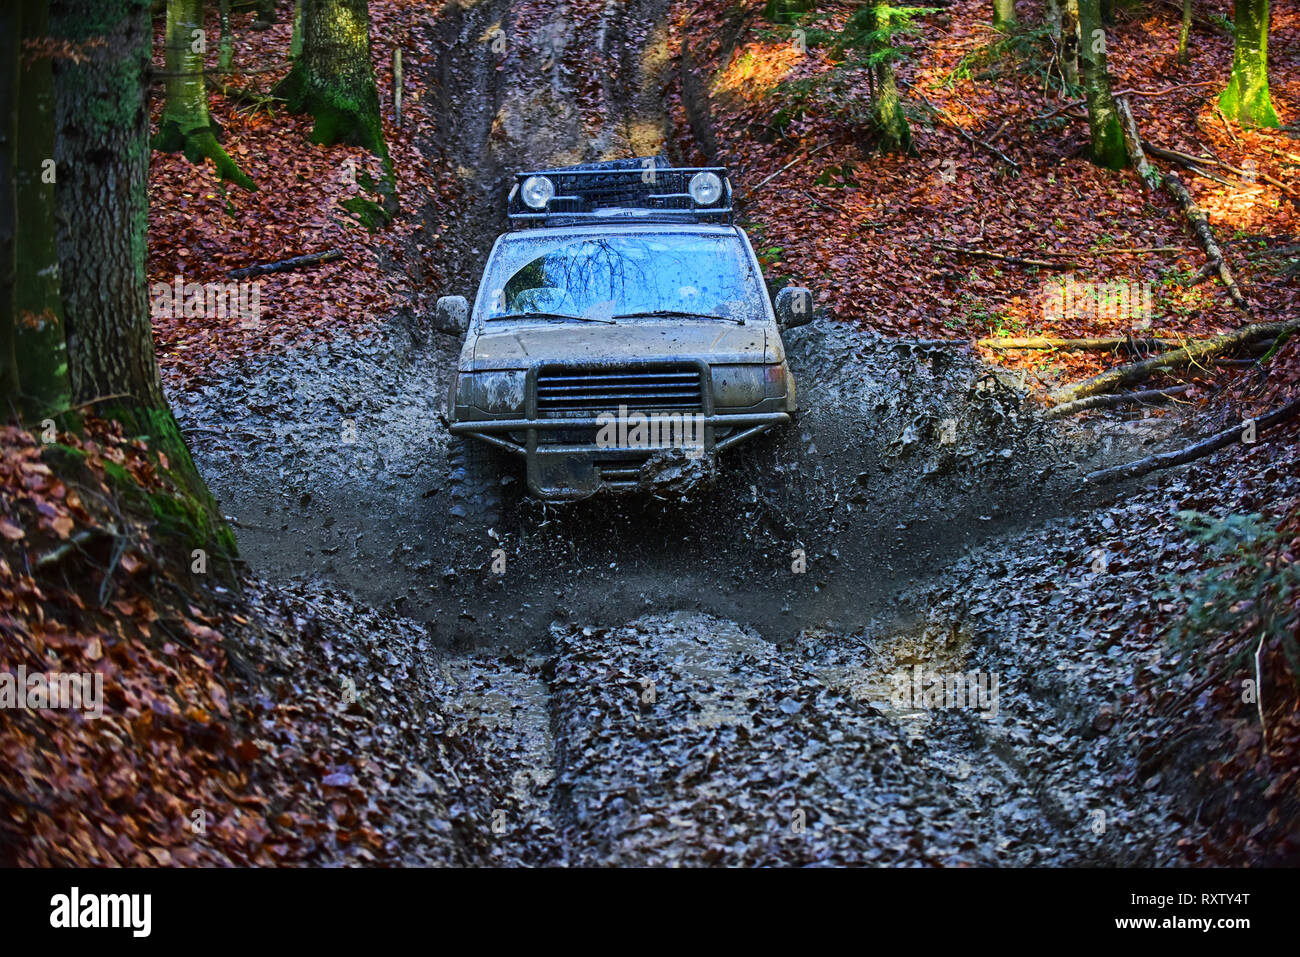 SUV covered with mud stuck in dirt on path - Stock Image